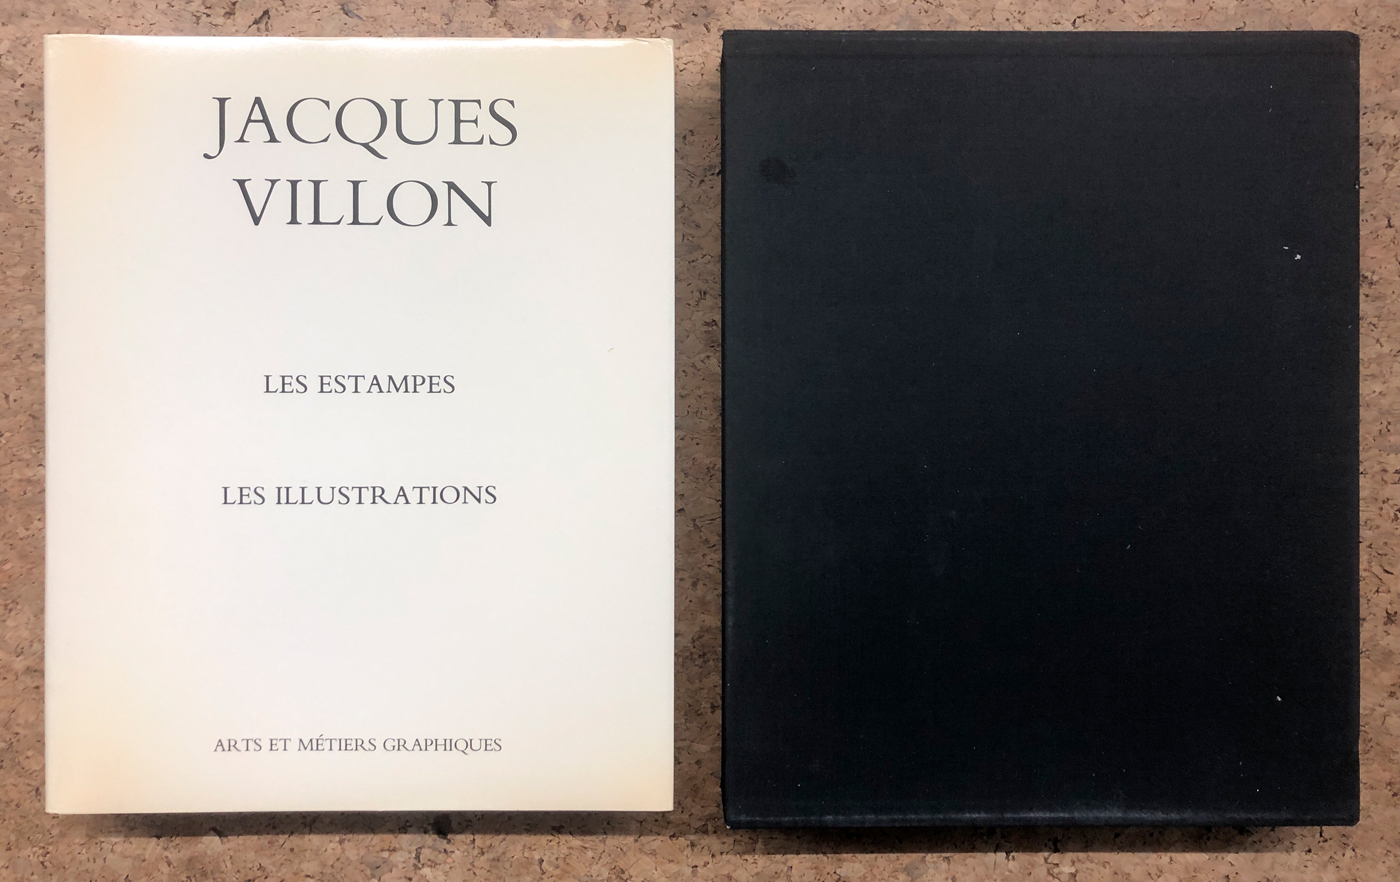 JACQUES VILLON - Les estampes et les illustrations. Catalogue raisonné, 1979